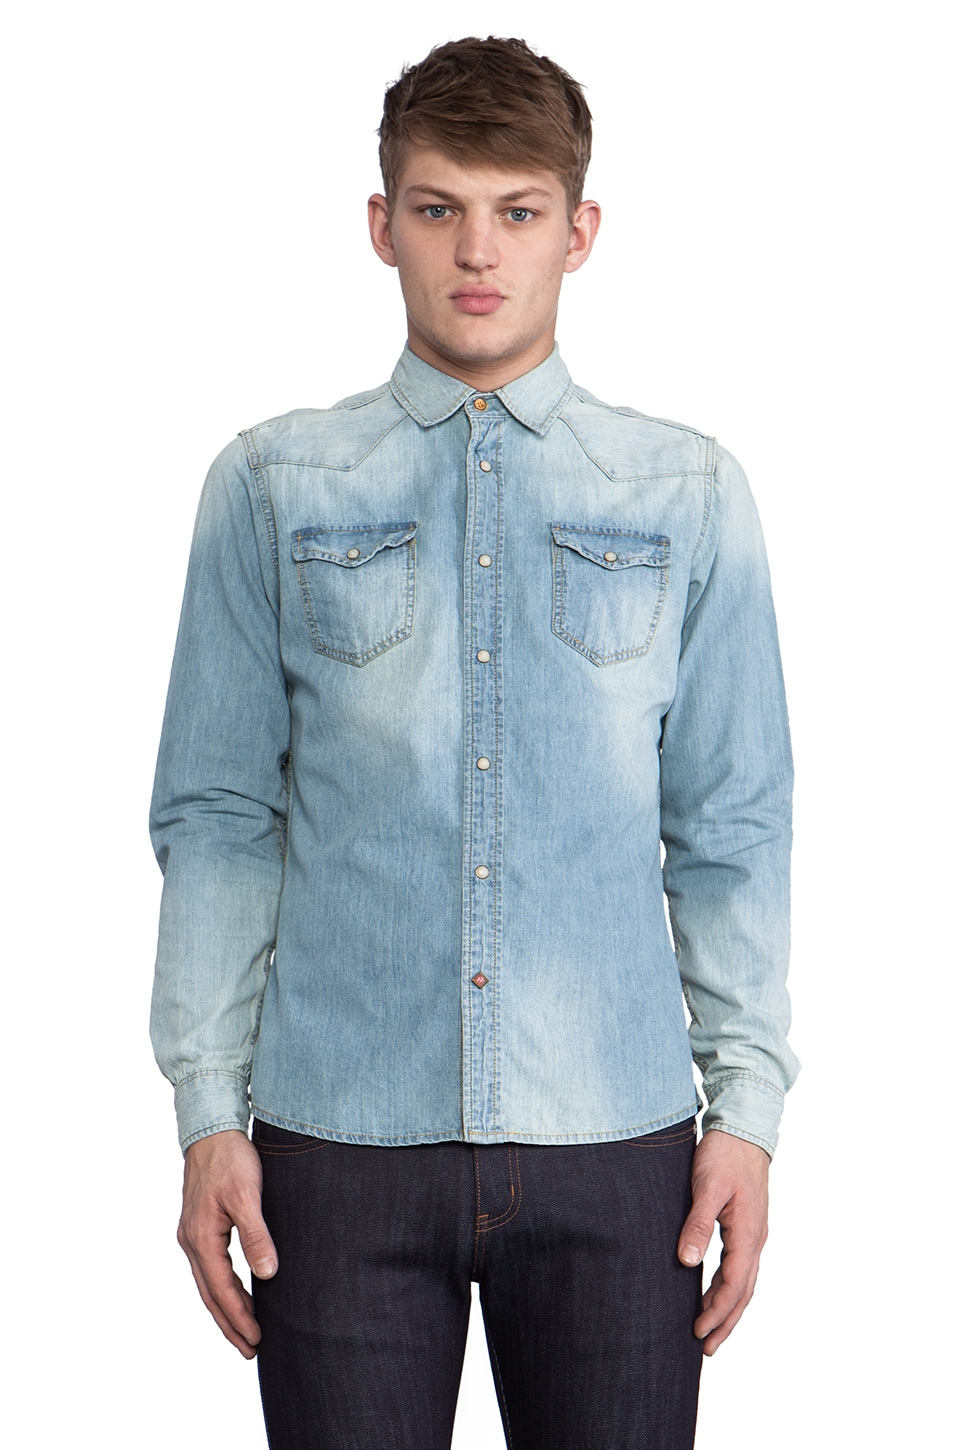 Scotch & Soda Blue Denim Western Shirt in Denim